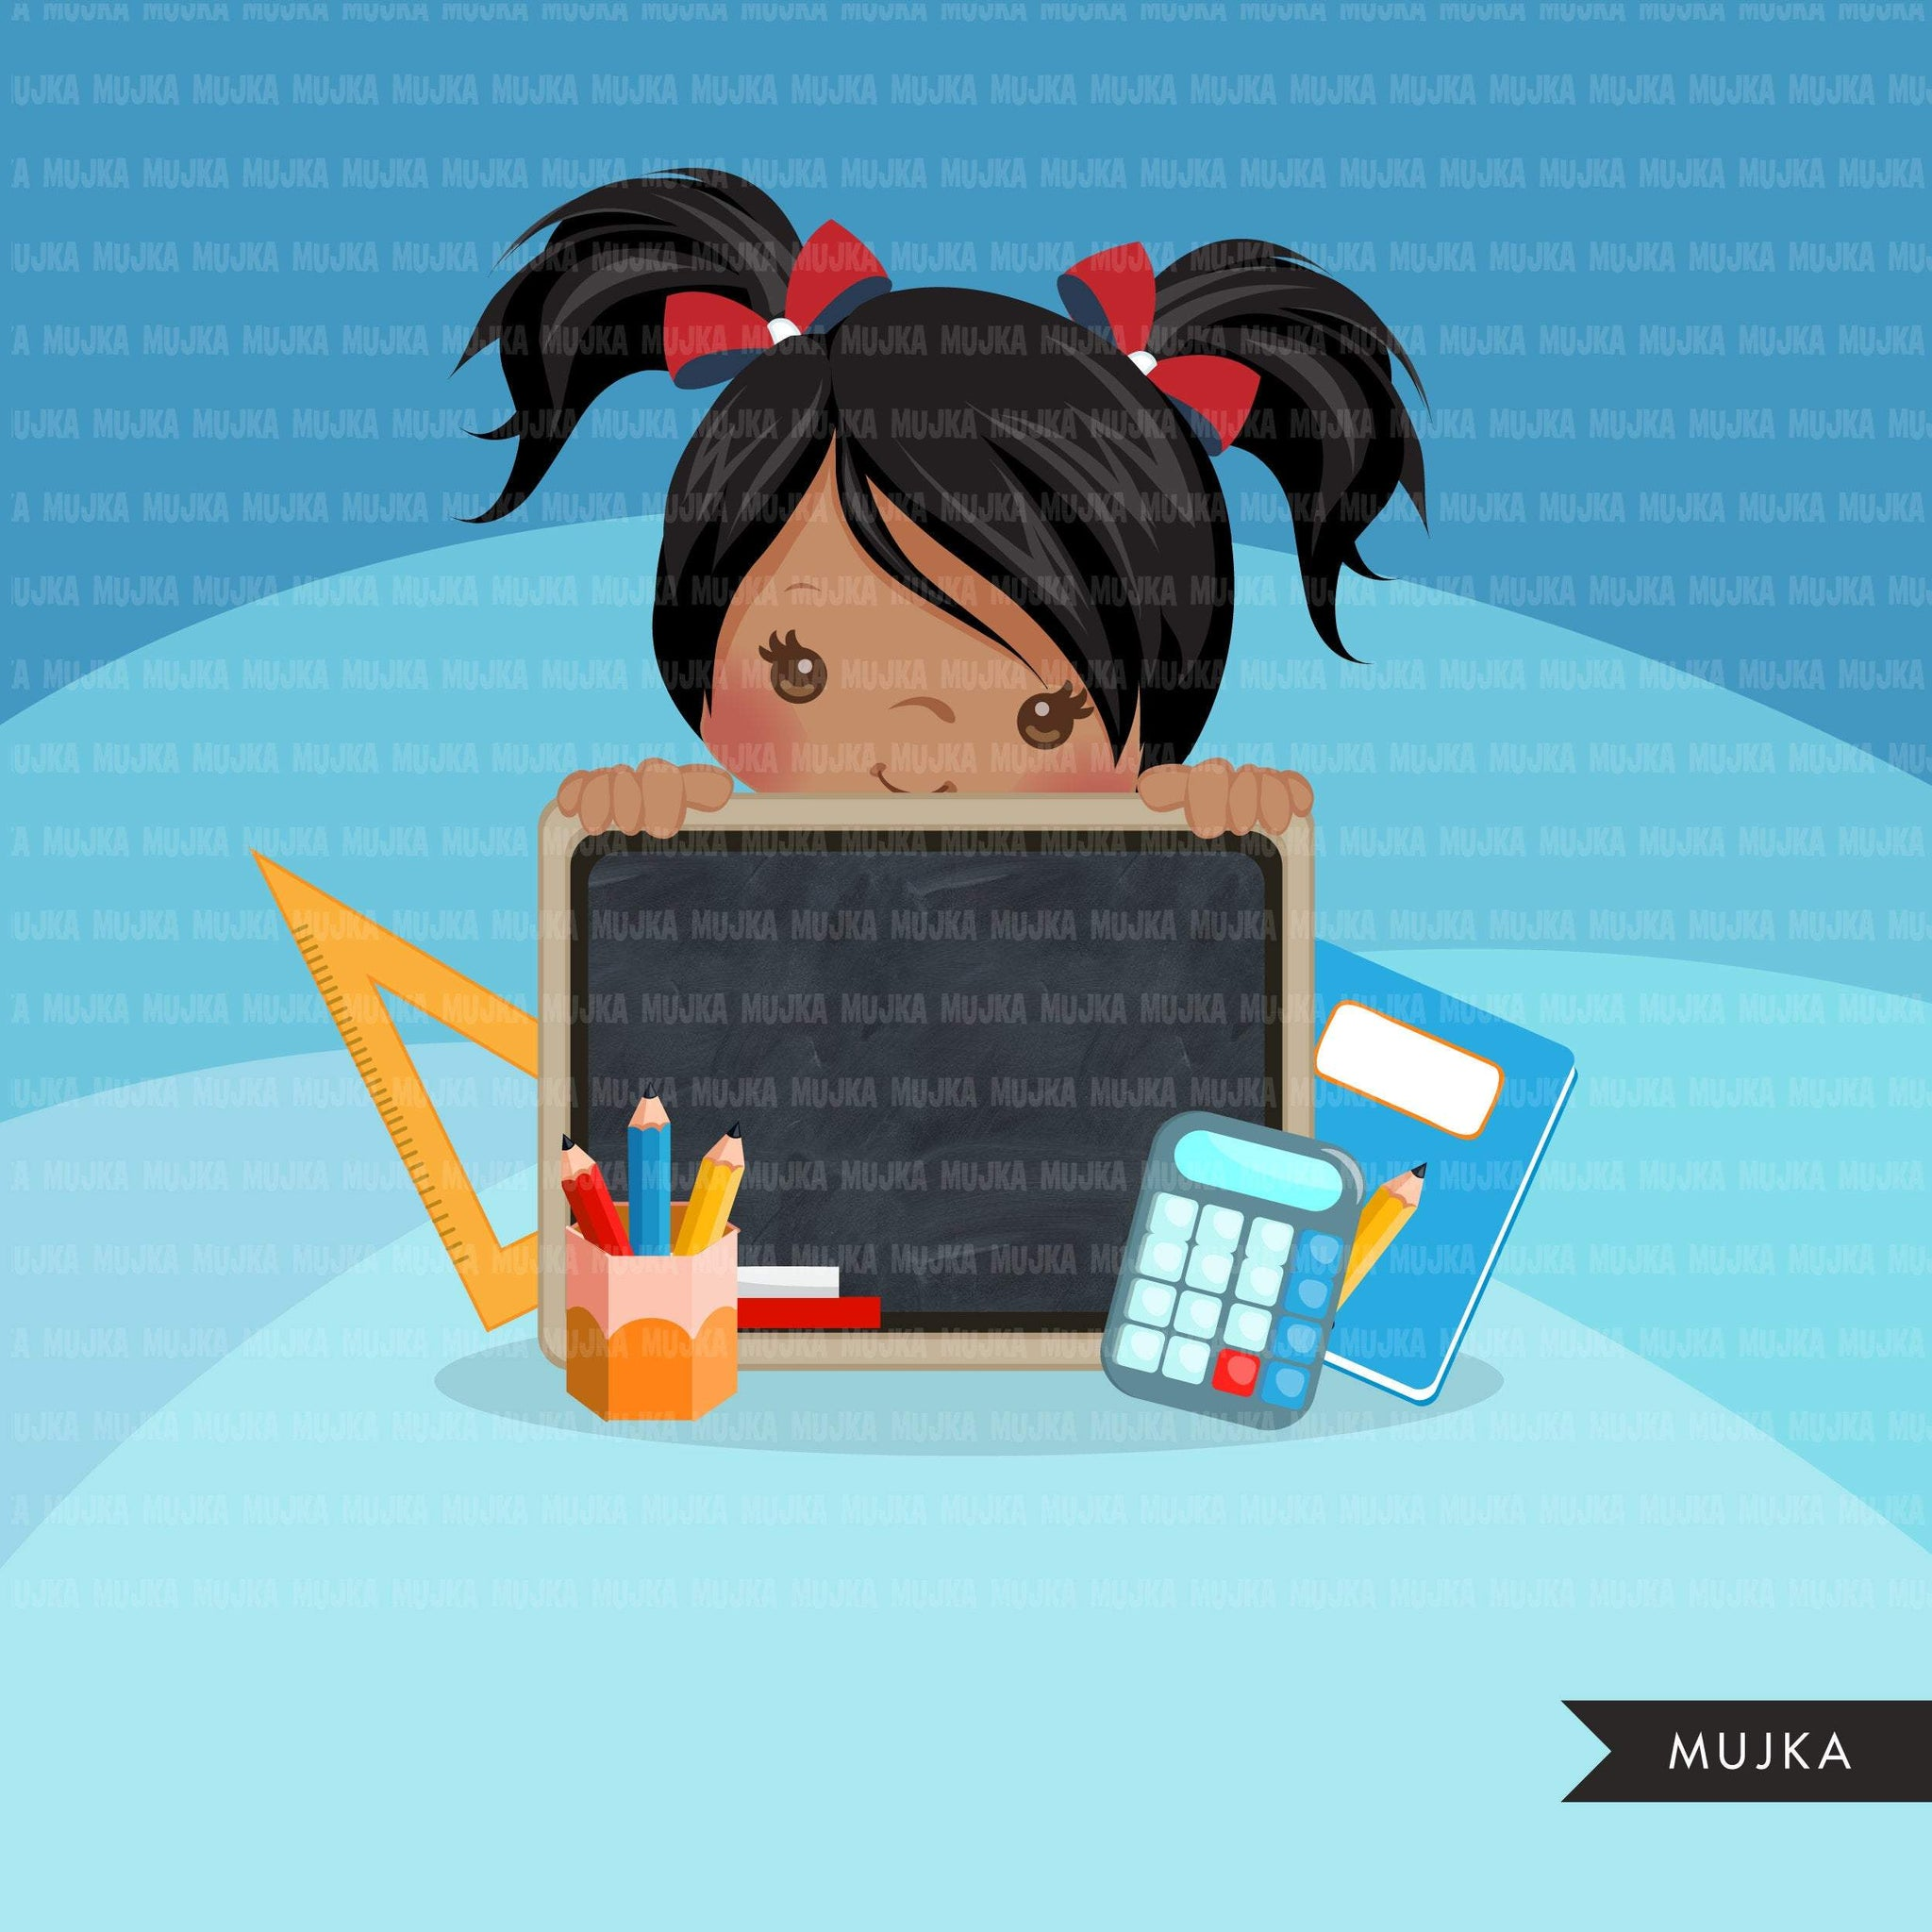 Back to school clipart peeking students Girl with black board, Education, teaching graphics, PRE-K, grade 1